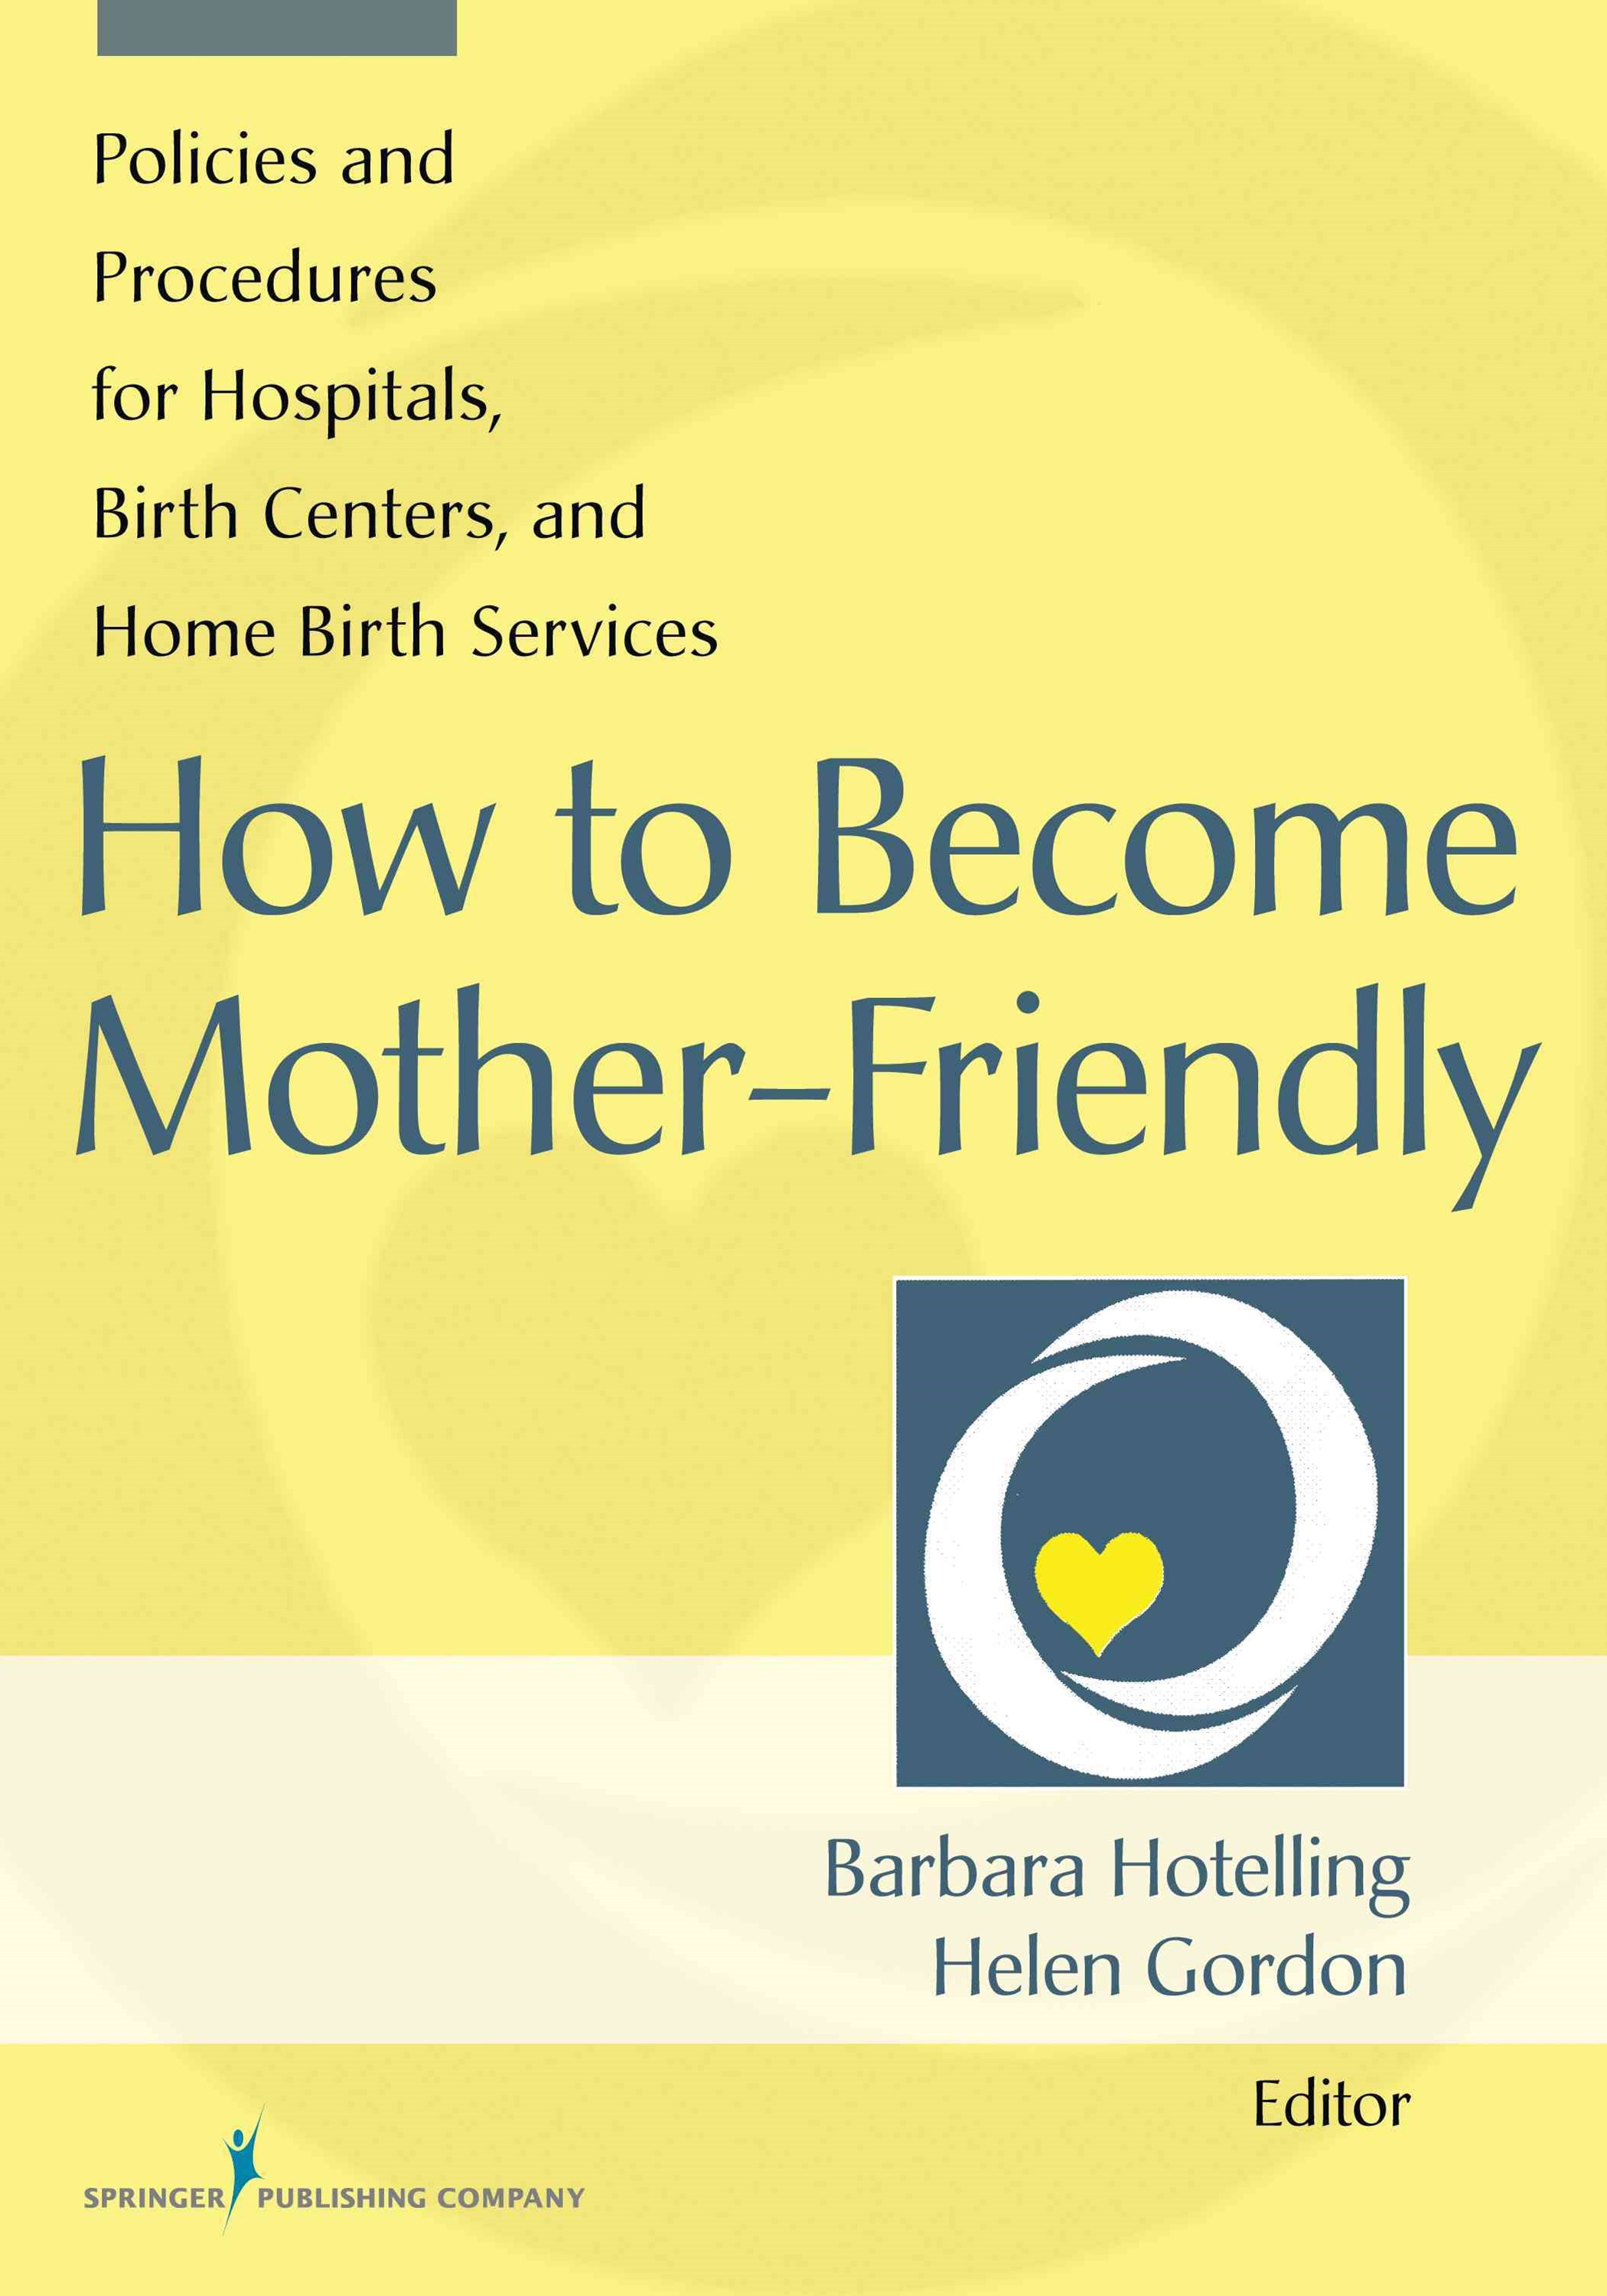 How to Become Mother-Friendly